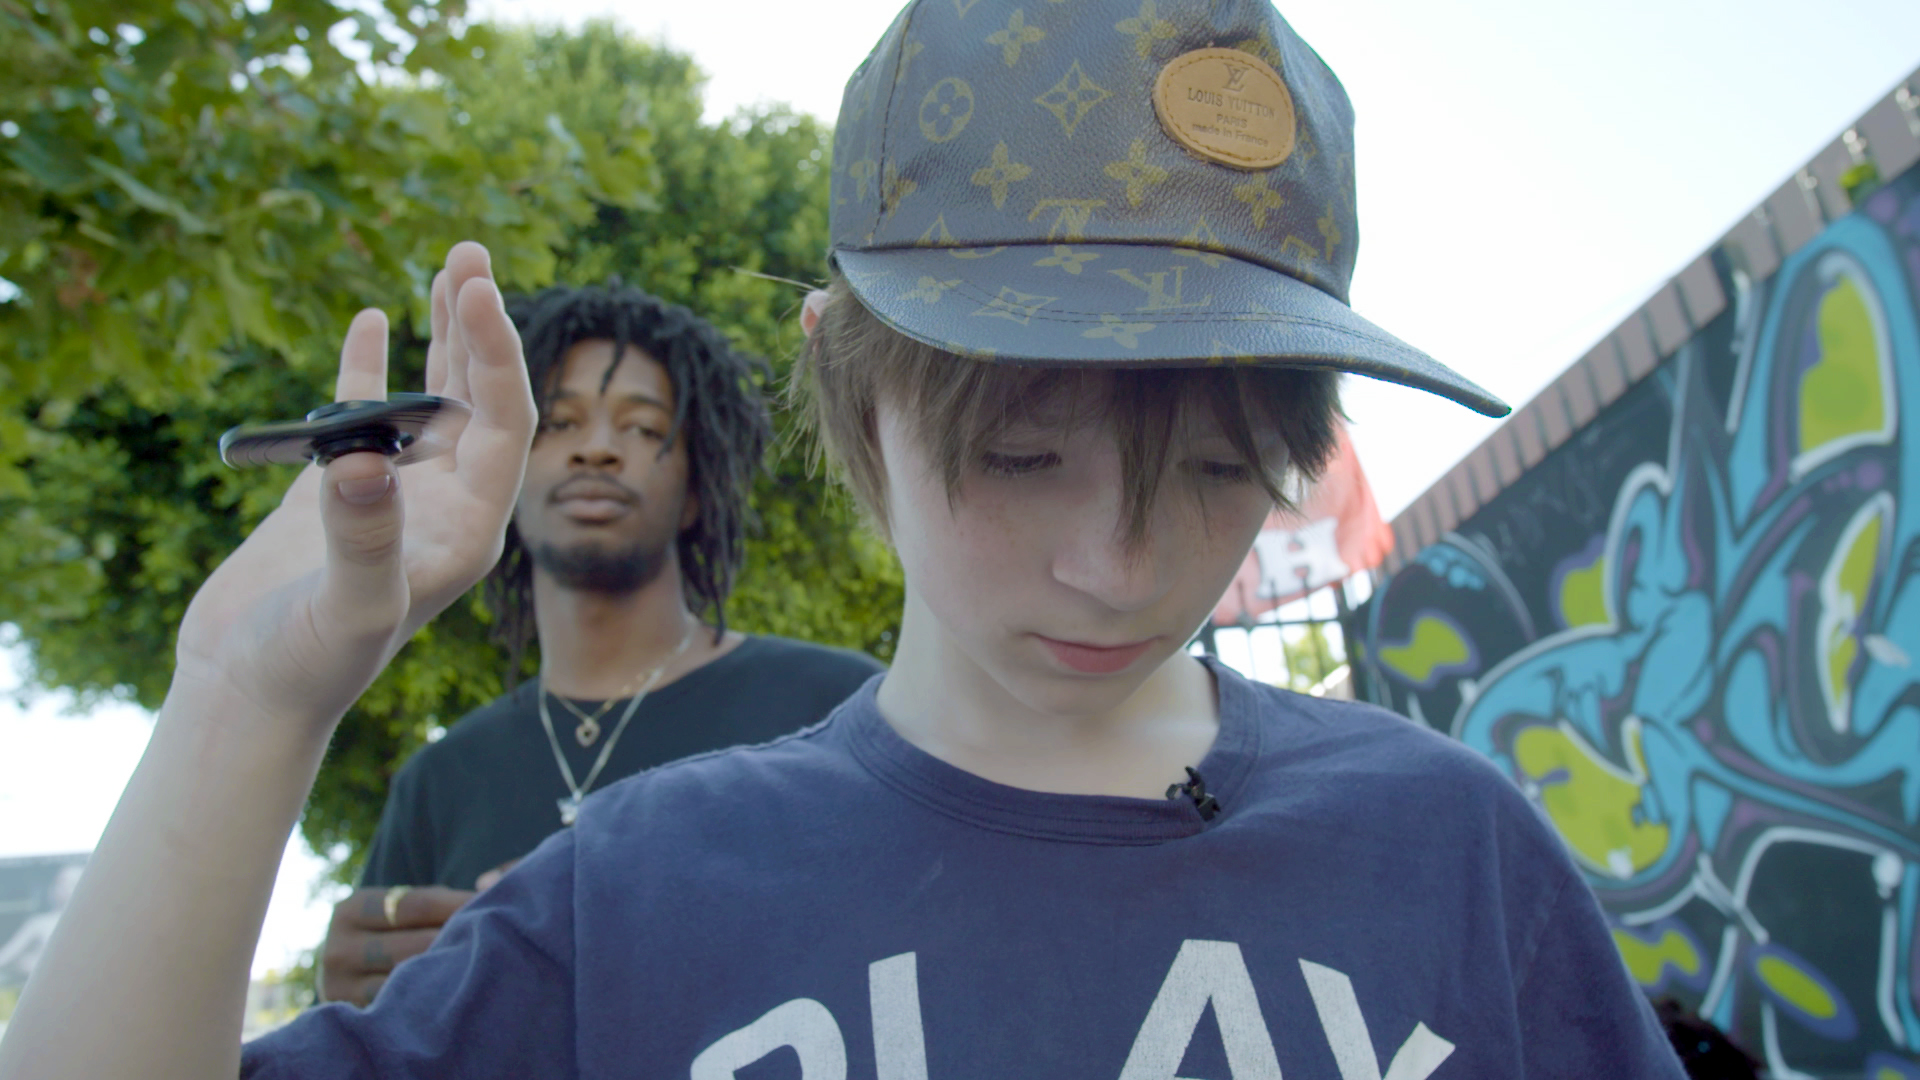 Matt Ox Is the 12-Year-Old Fidget-Spinning Rapper About to Blow